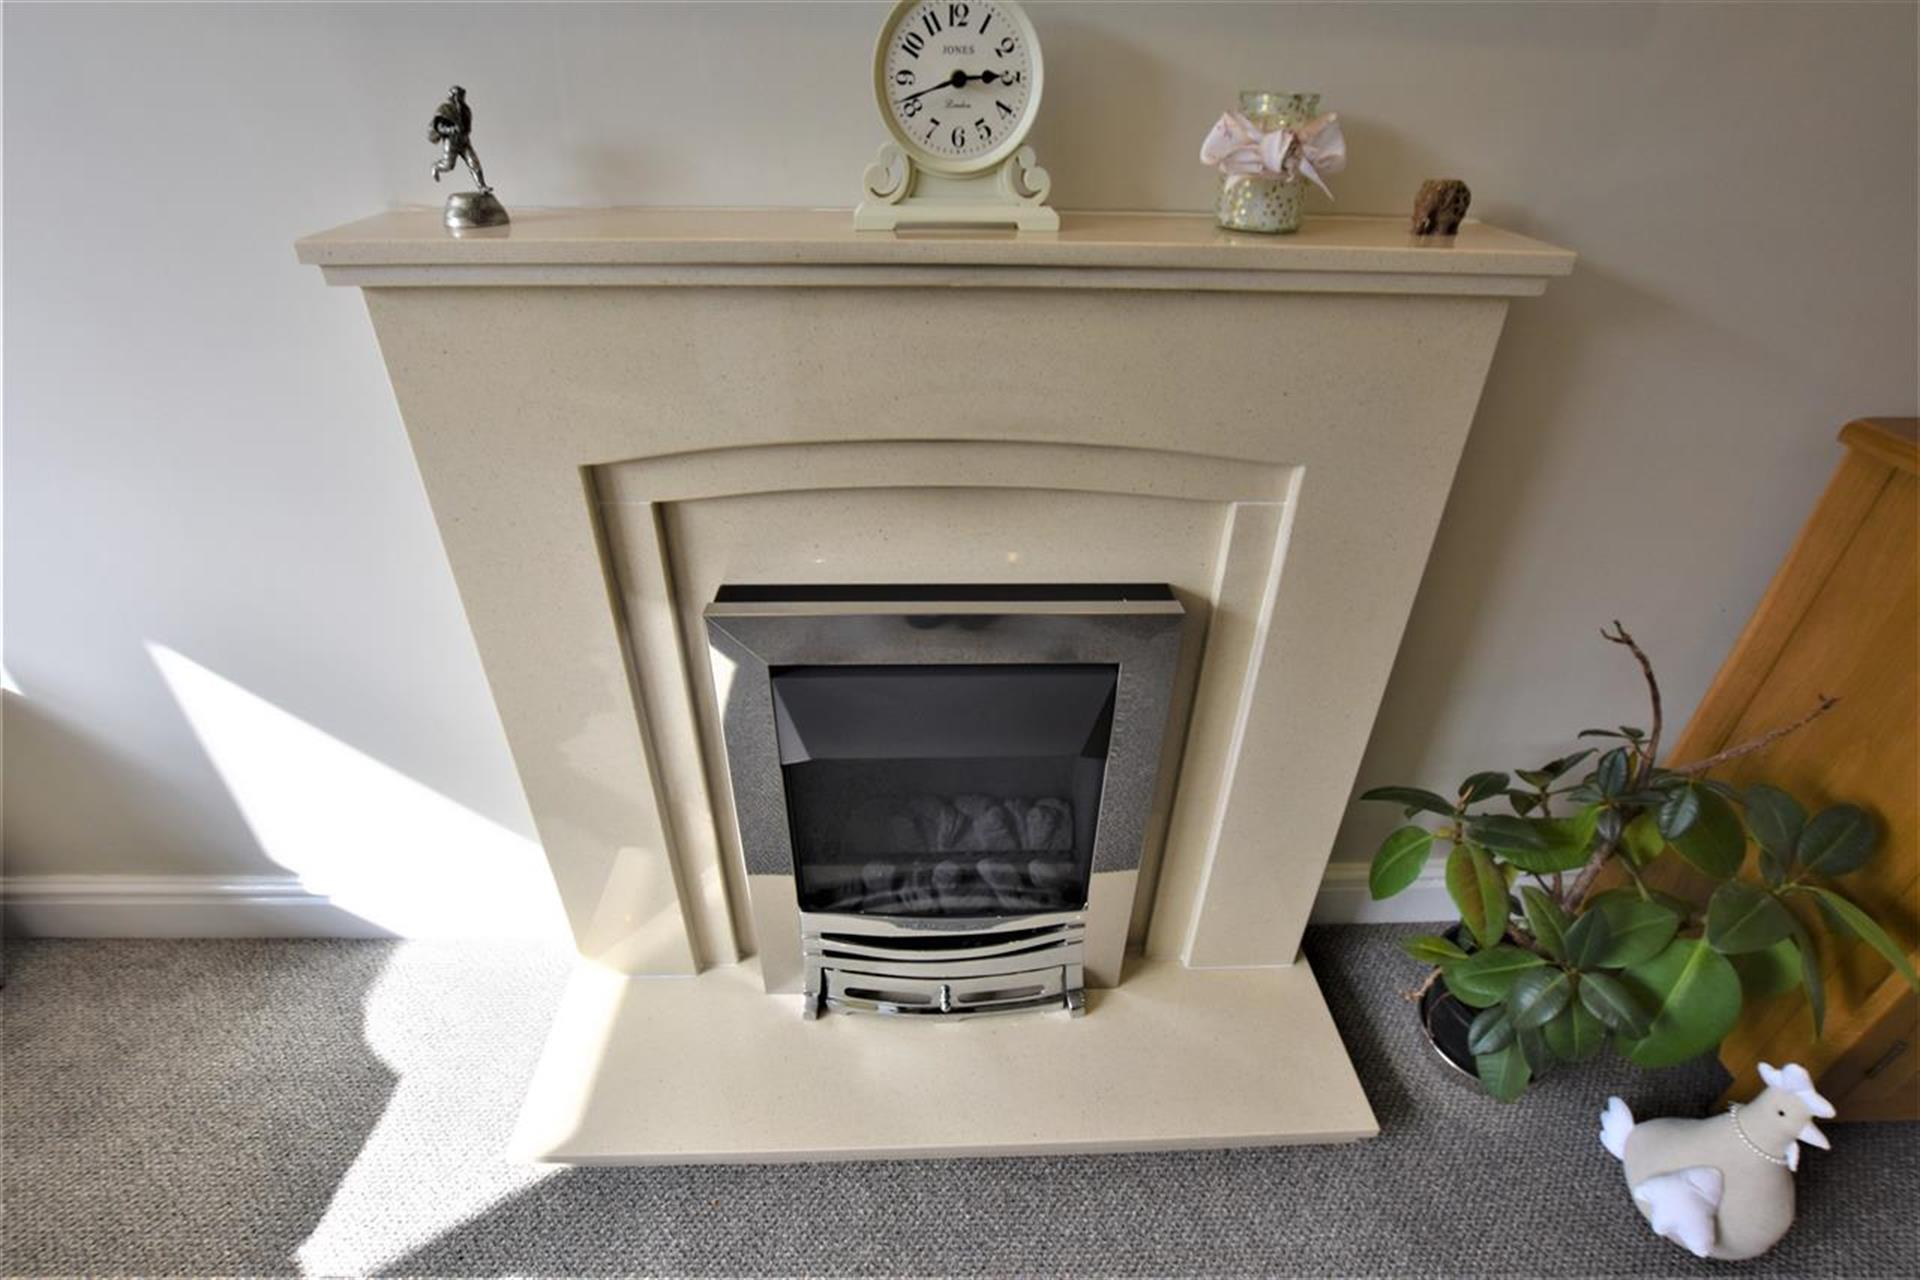 3 Bedroom Semi-detached House For Sale - Flueless Gas Fire